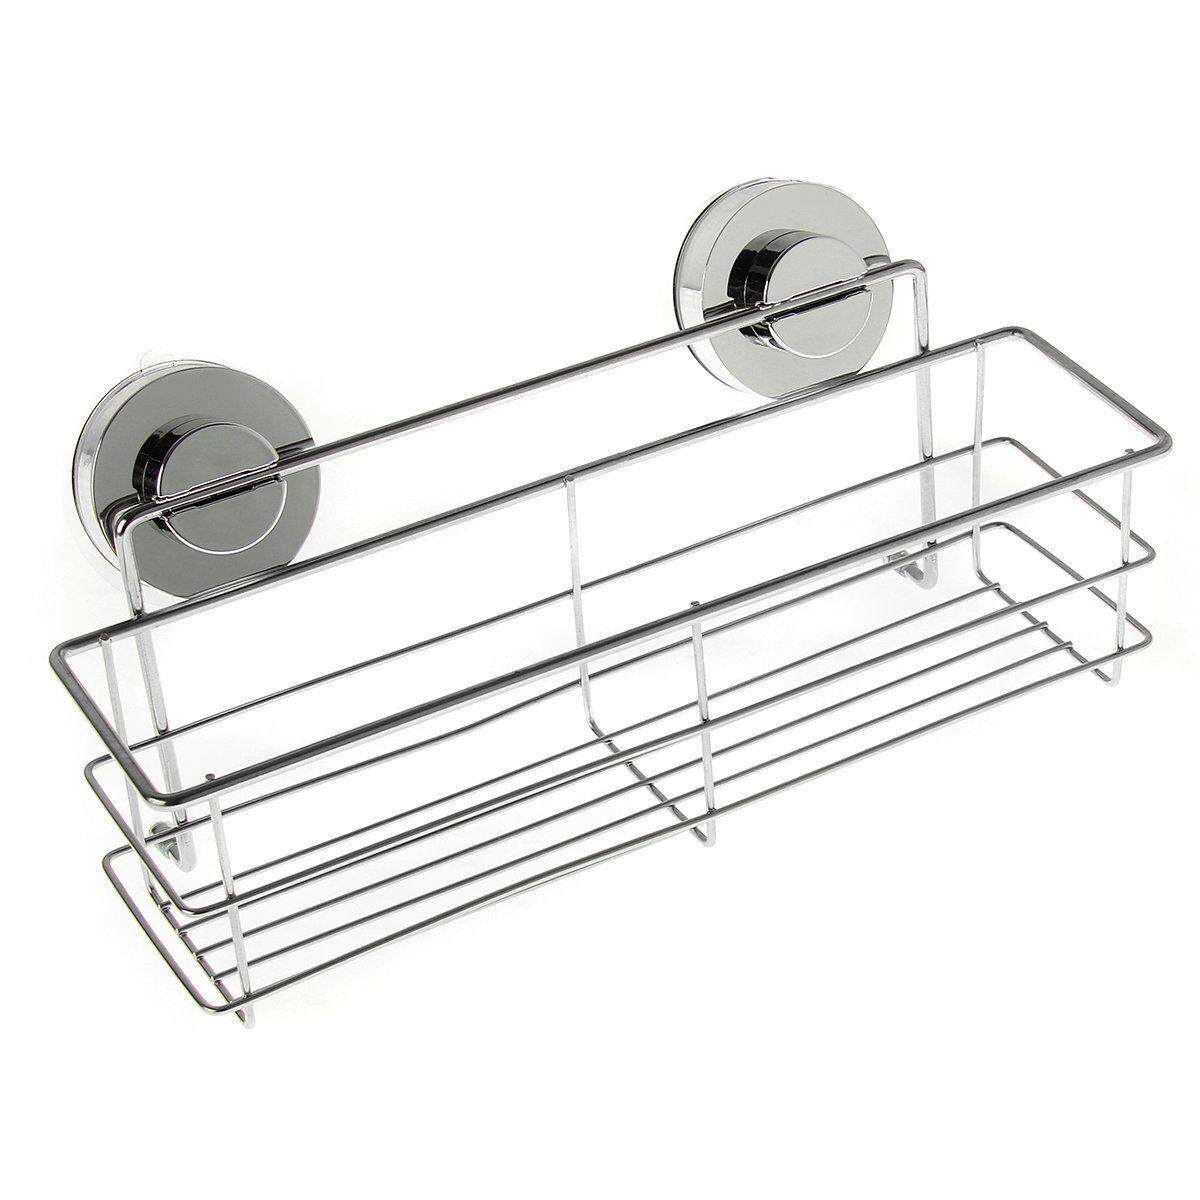 Stainless Steel Kitchen Bathroom Shower Storage Basket Caddy Shelf Suction Cup By Moonbeam.